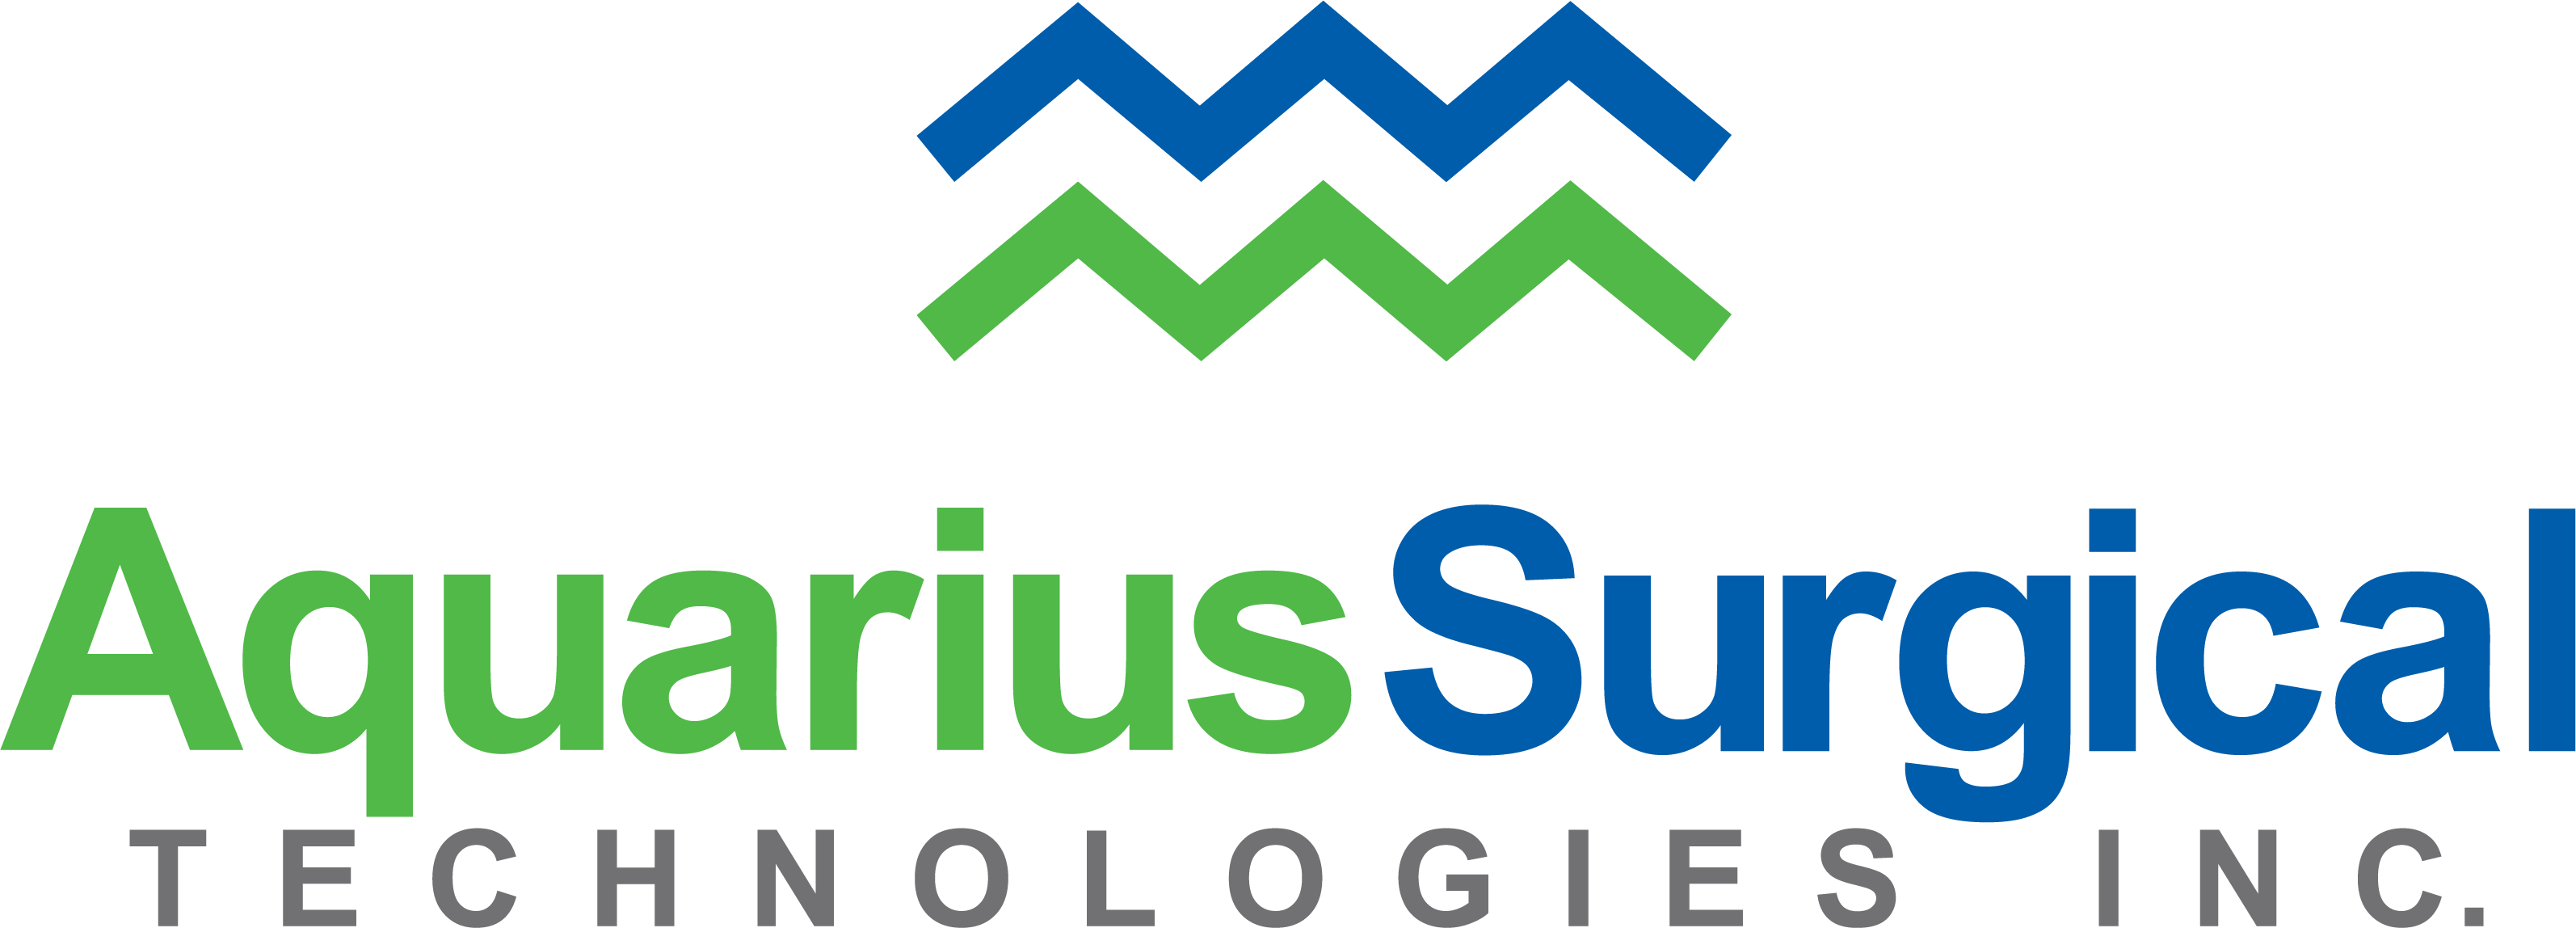 Aquarius Surgical Technologies